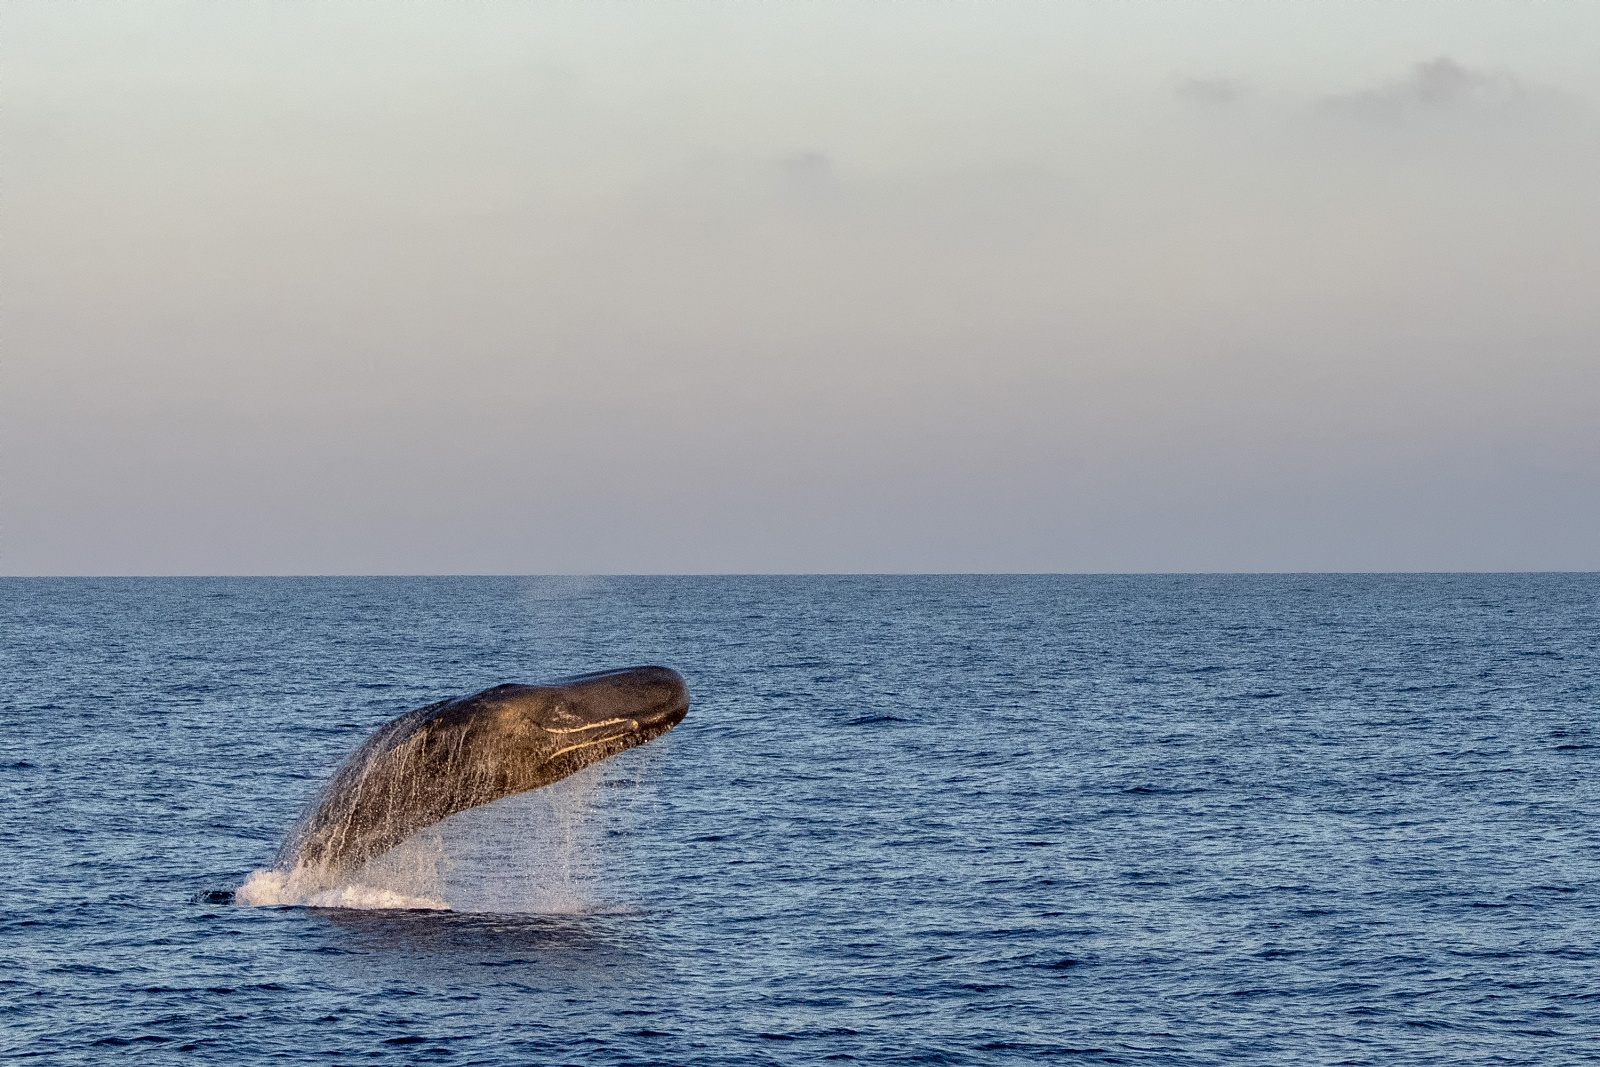 Breaching sperm whale - August 2020, Genoa, Italy